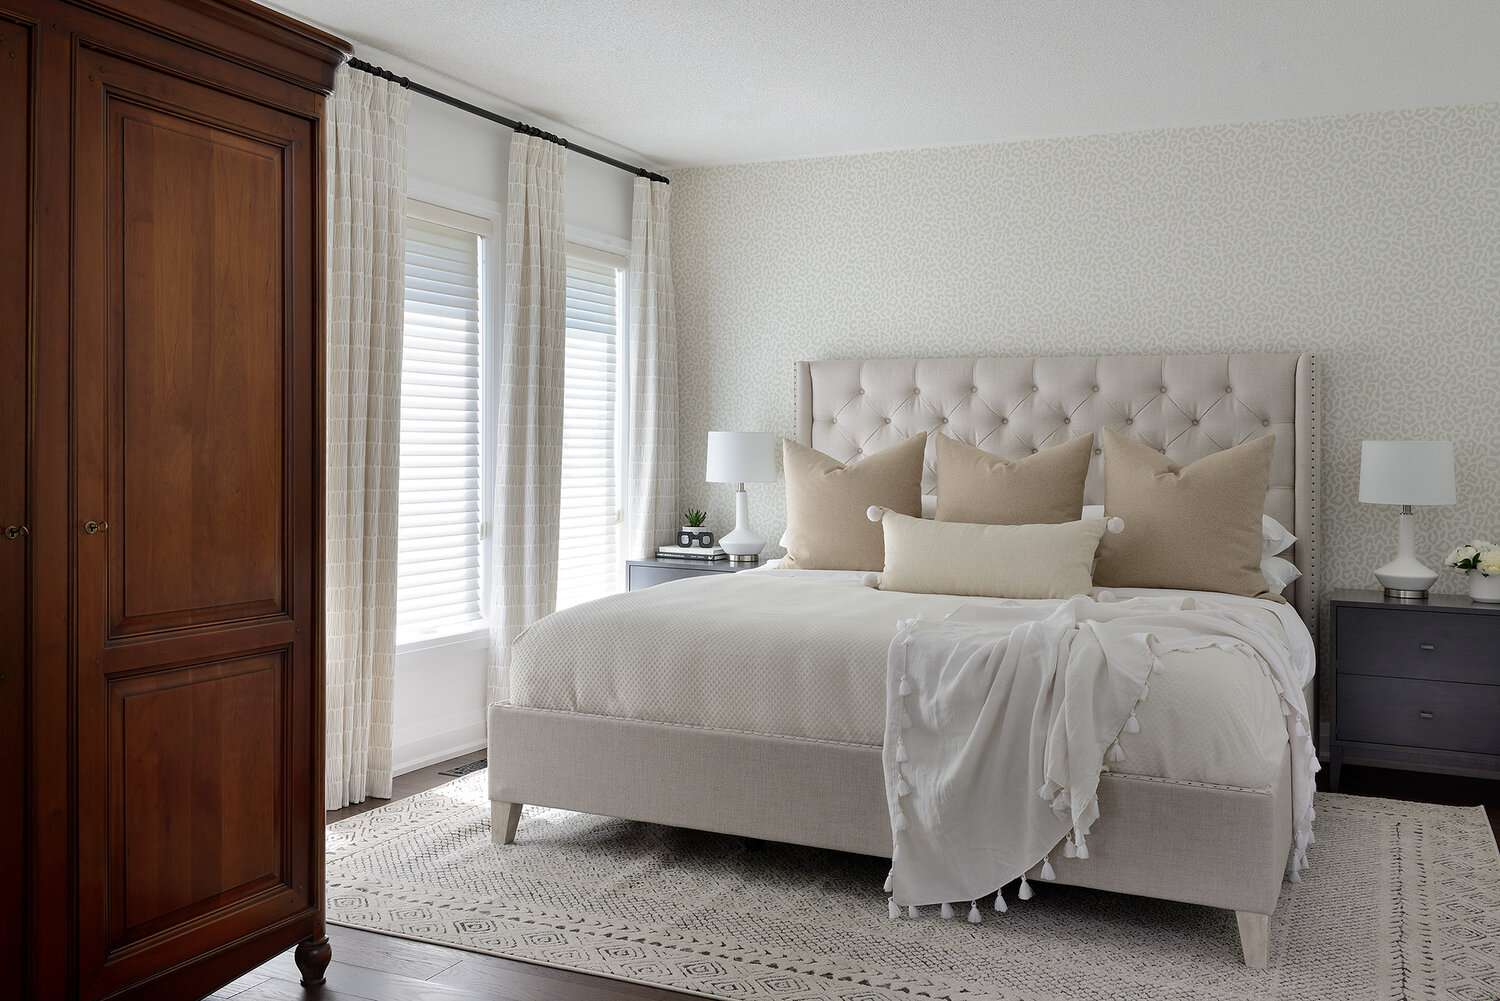 Traditional neutral bedroom with animal print wallpaper.